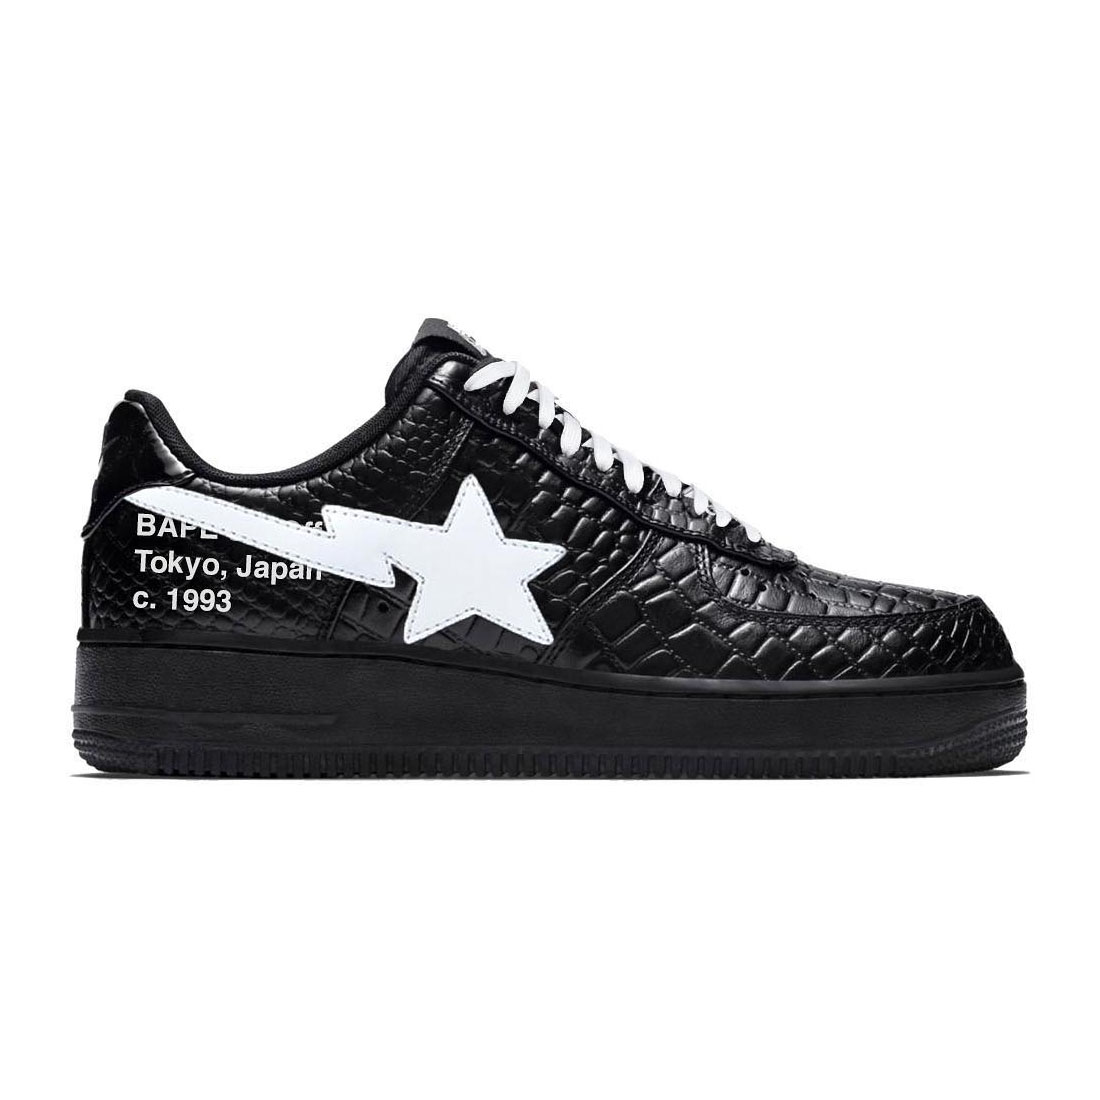 off-white™ New Off-White™ x BAPE Sneaker Mock